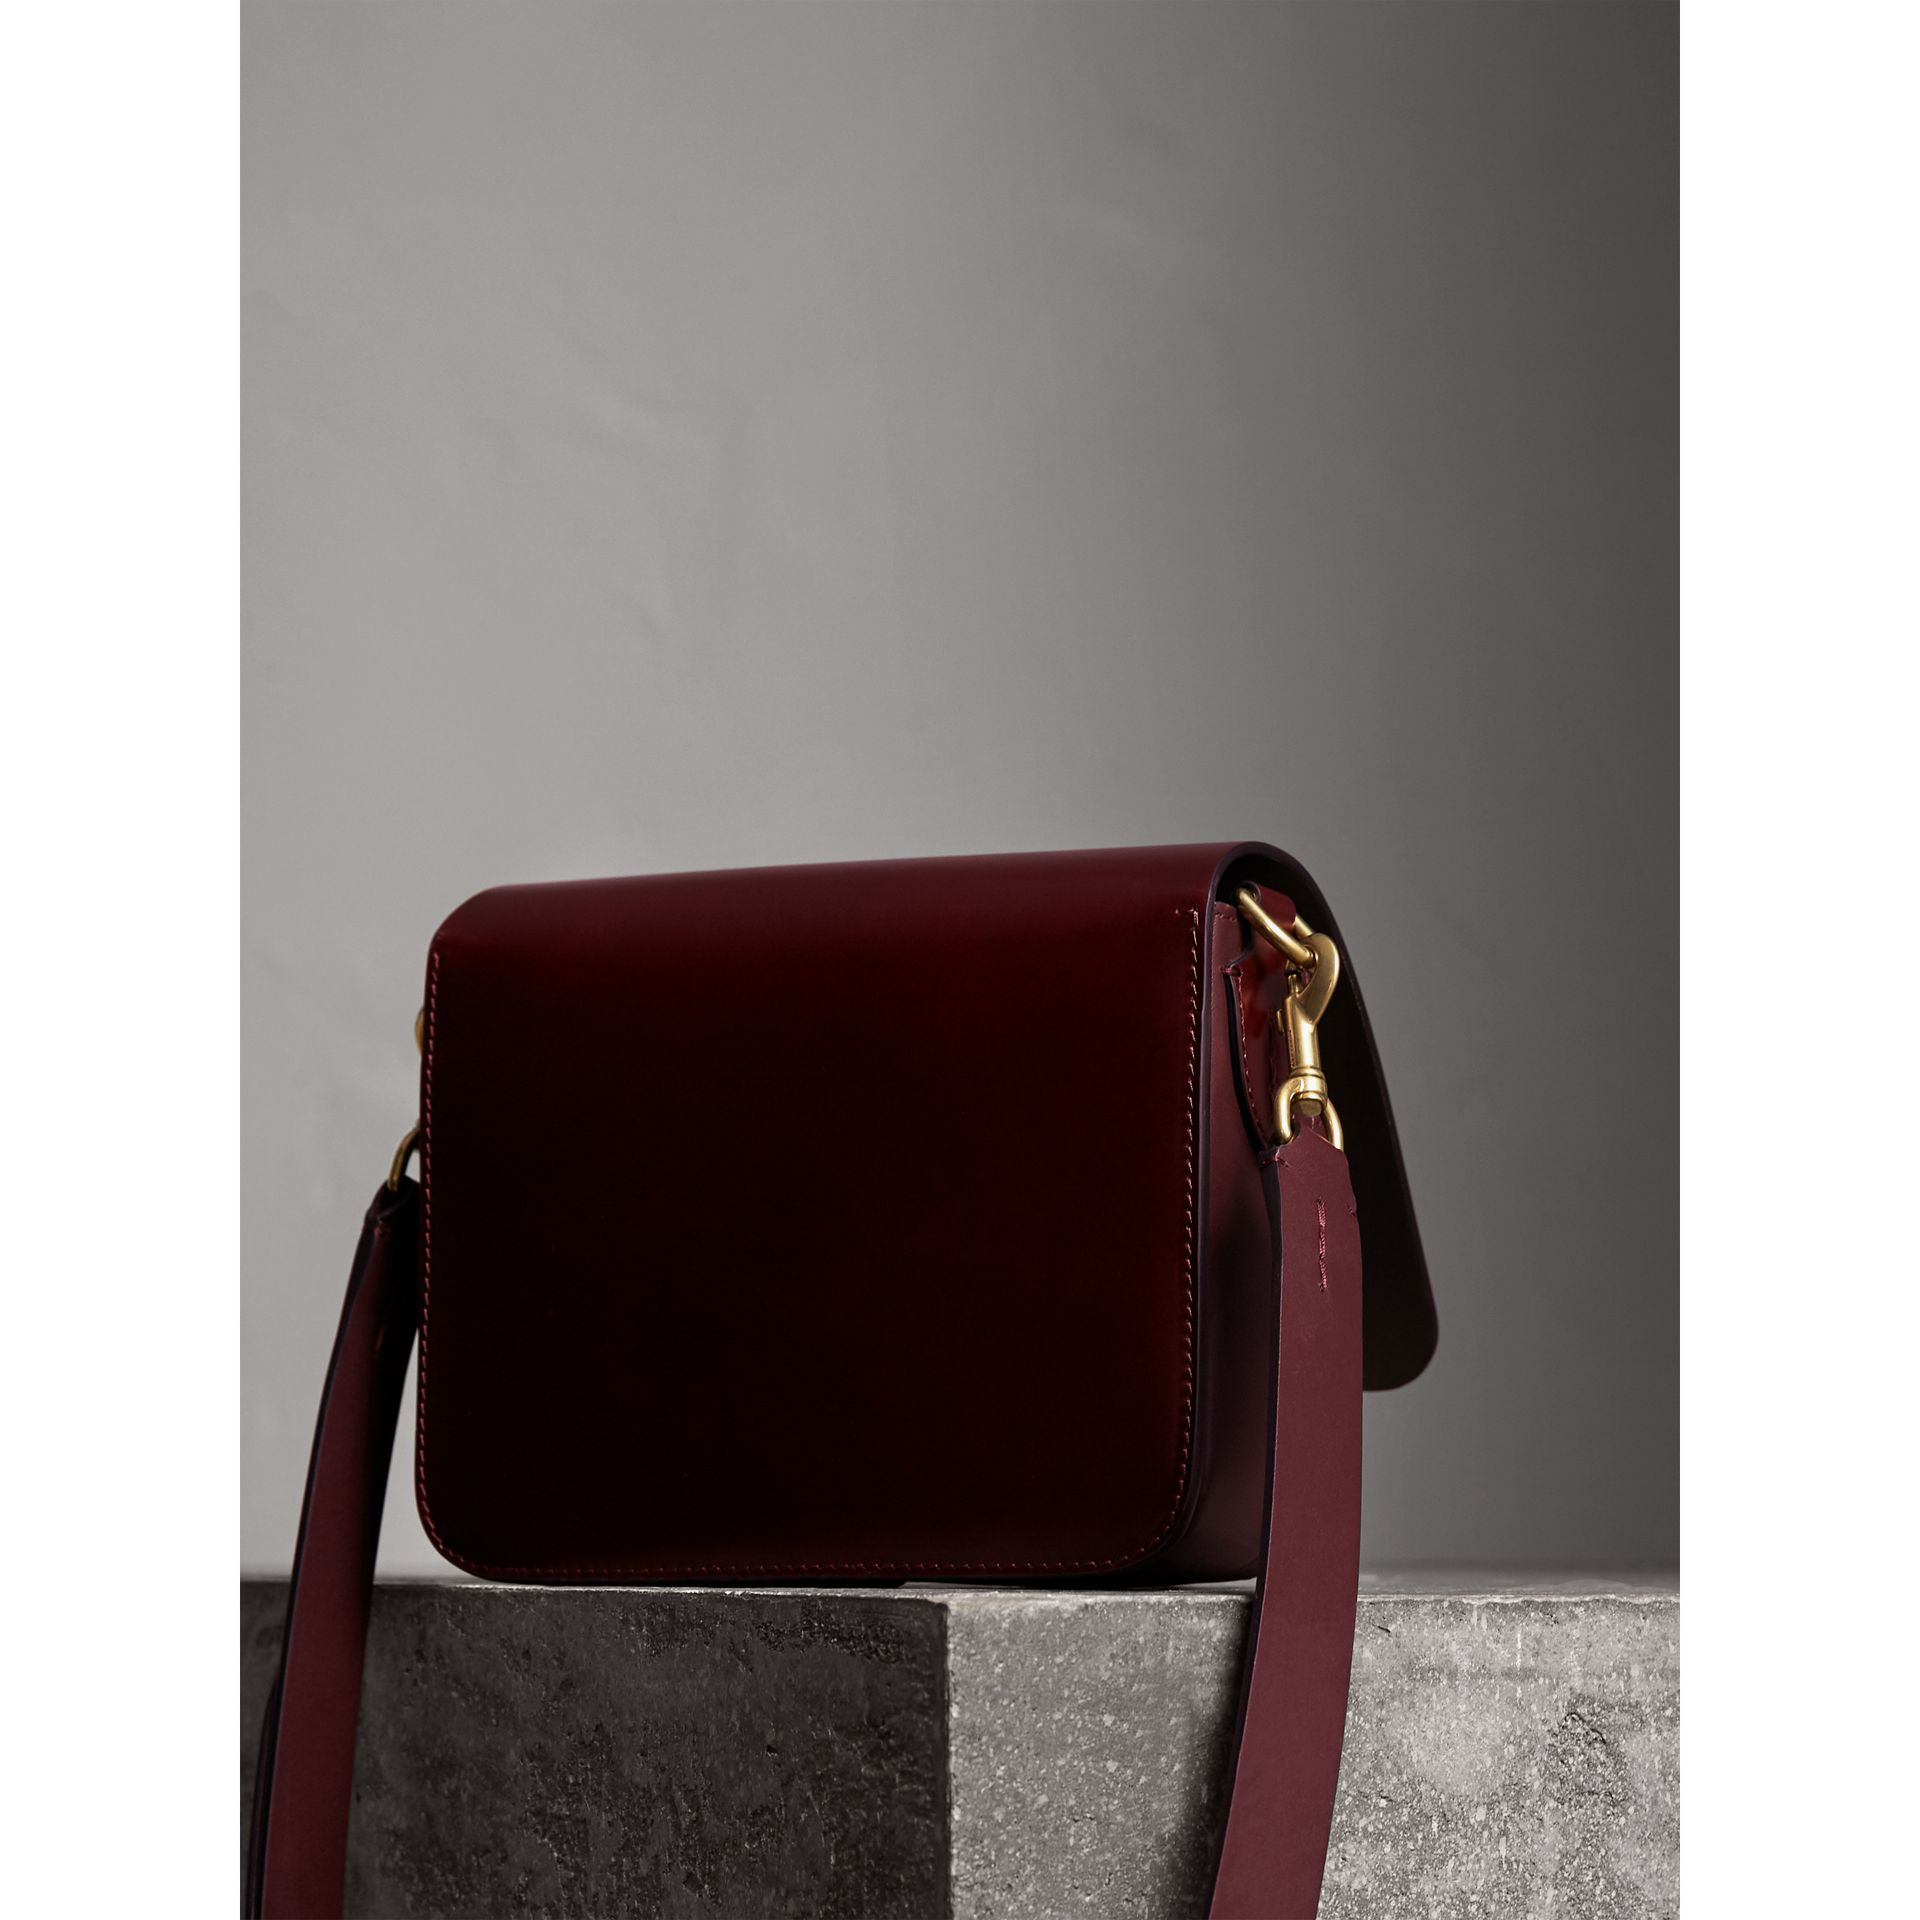 The Square Satchel in Bridle Leather in Deep Claret - Women | Burberry Singapore - gallery image 3